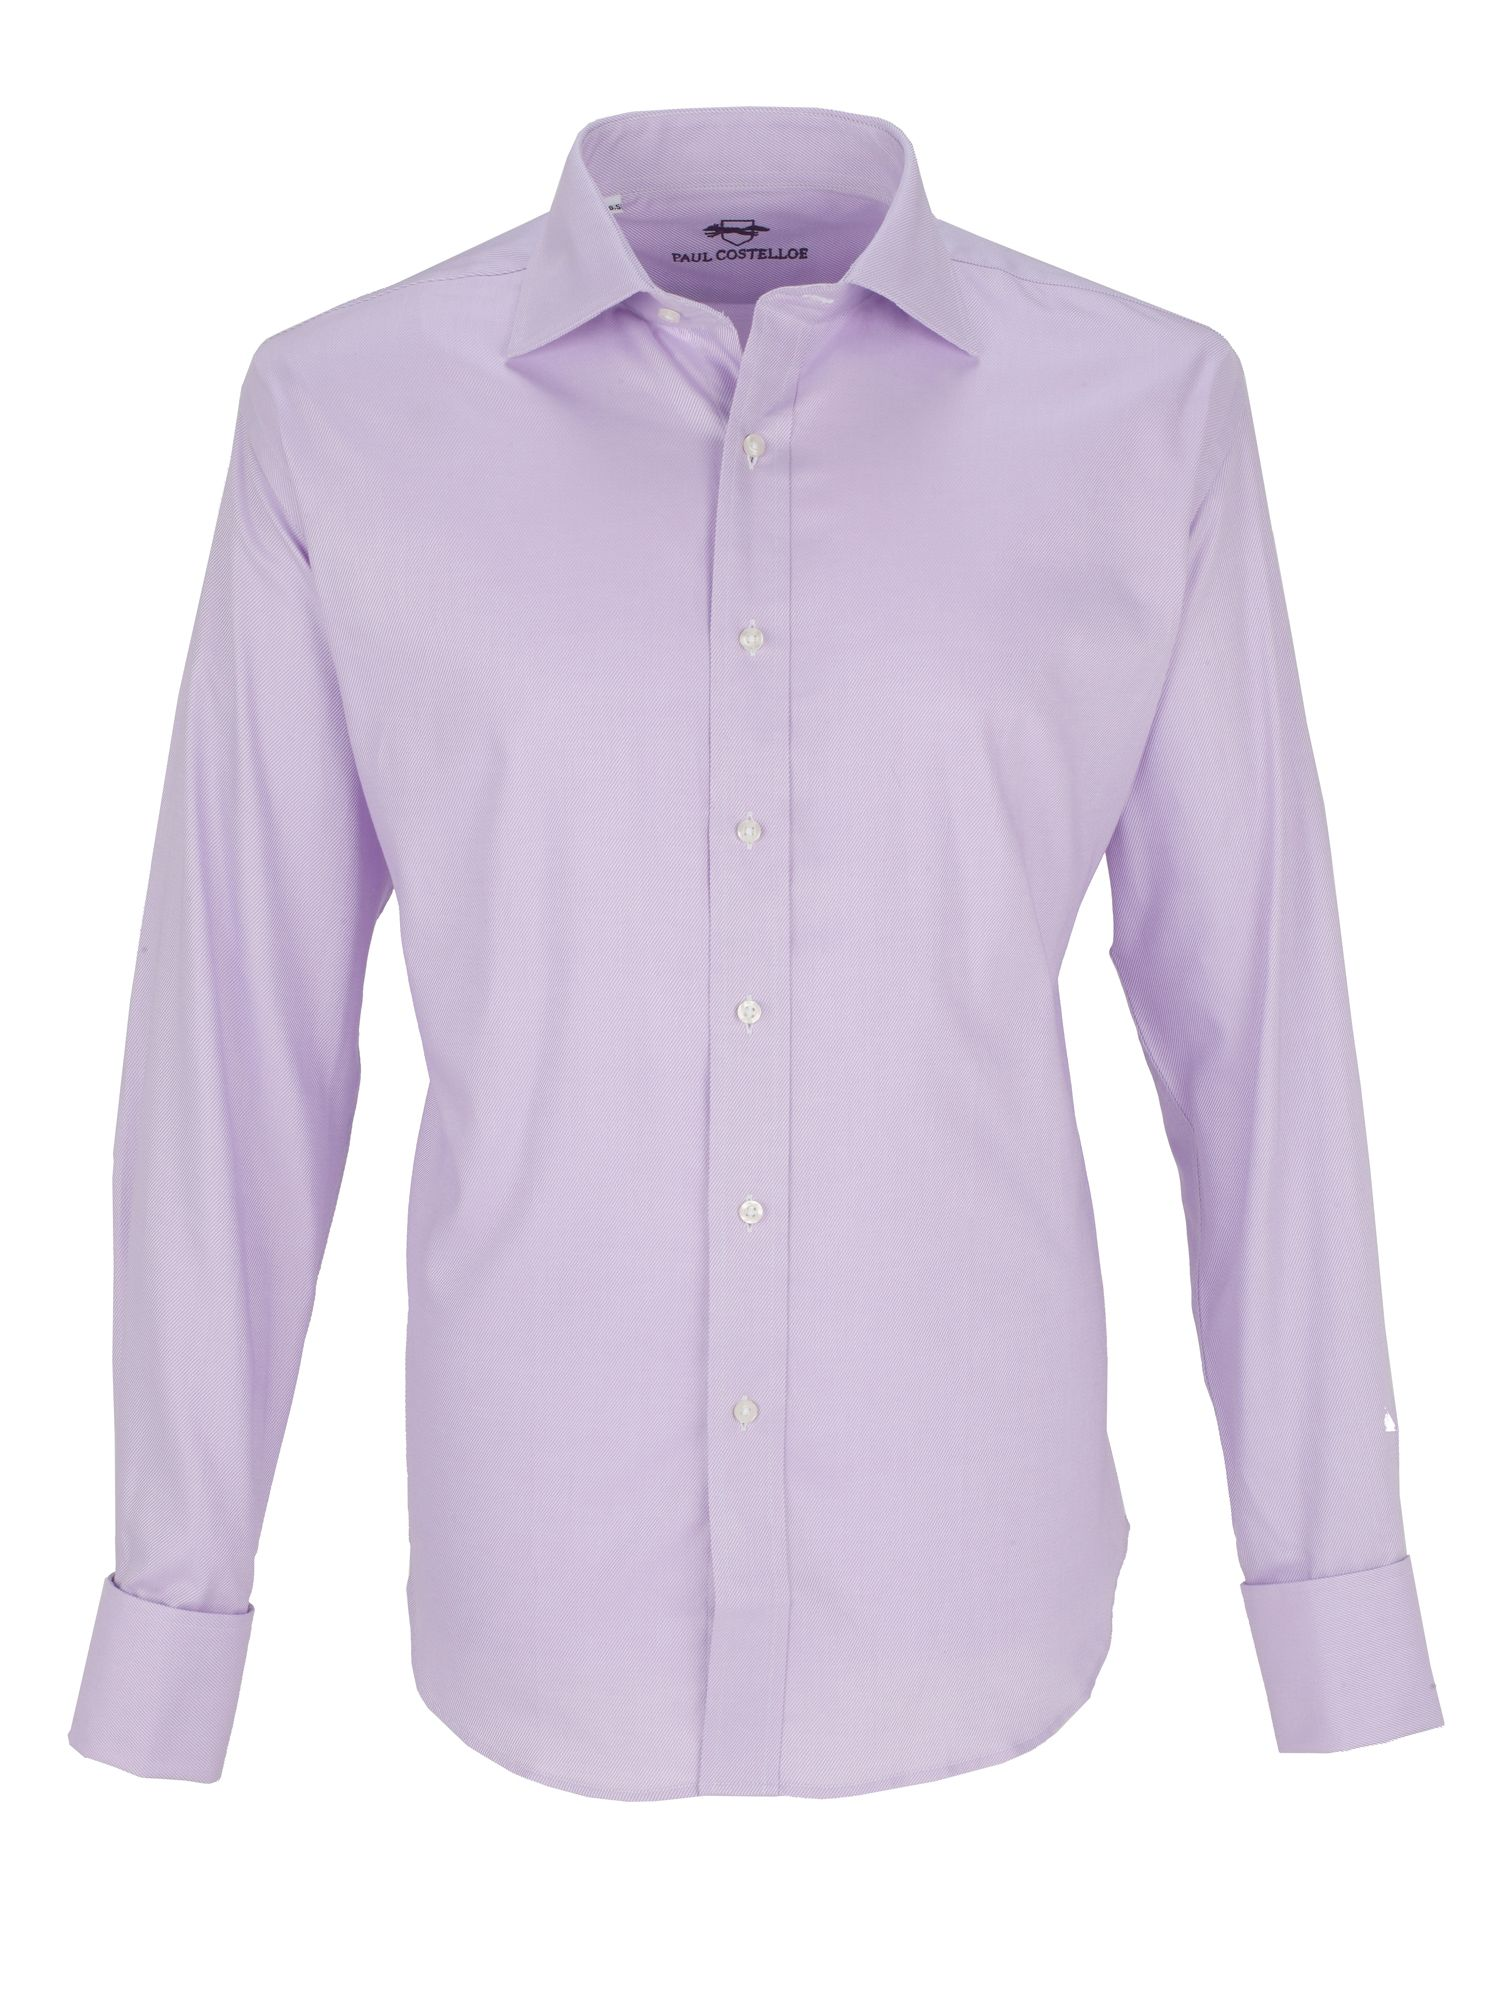 Lilac twill double cuff shirt